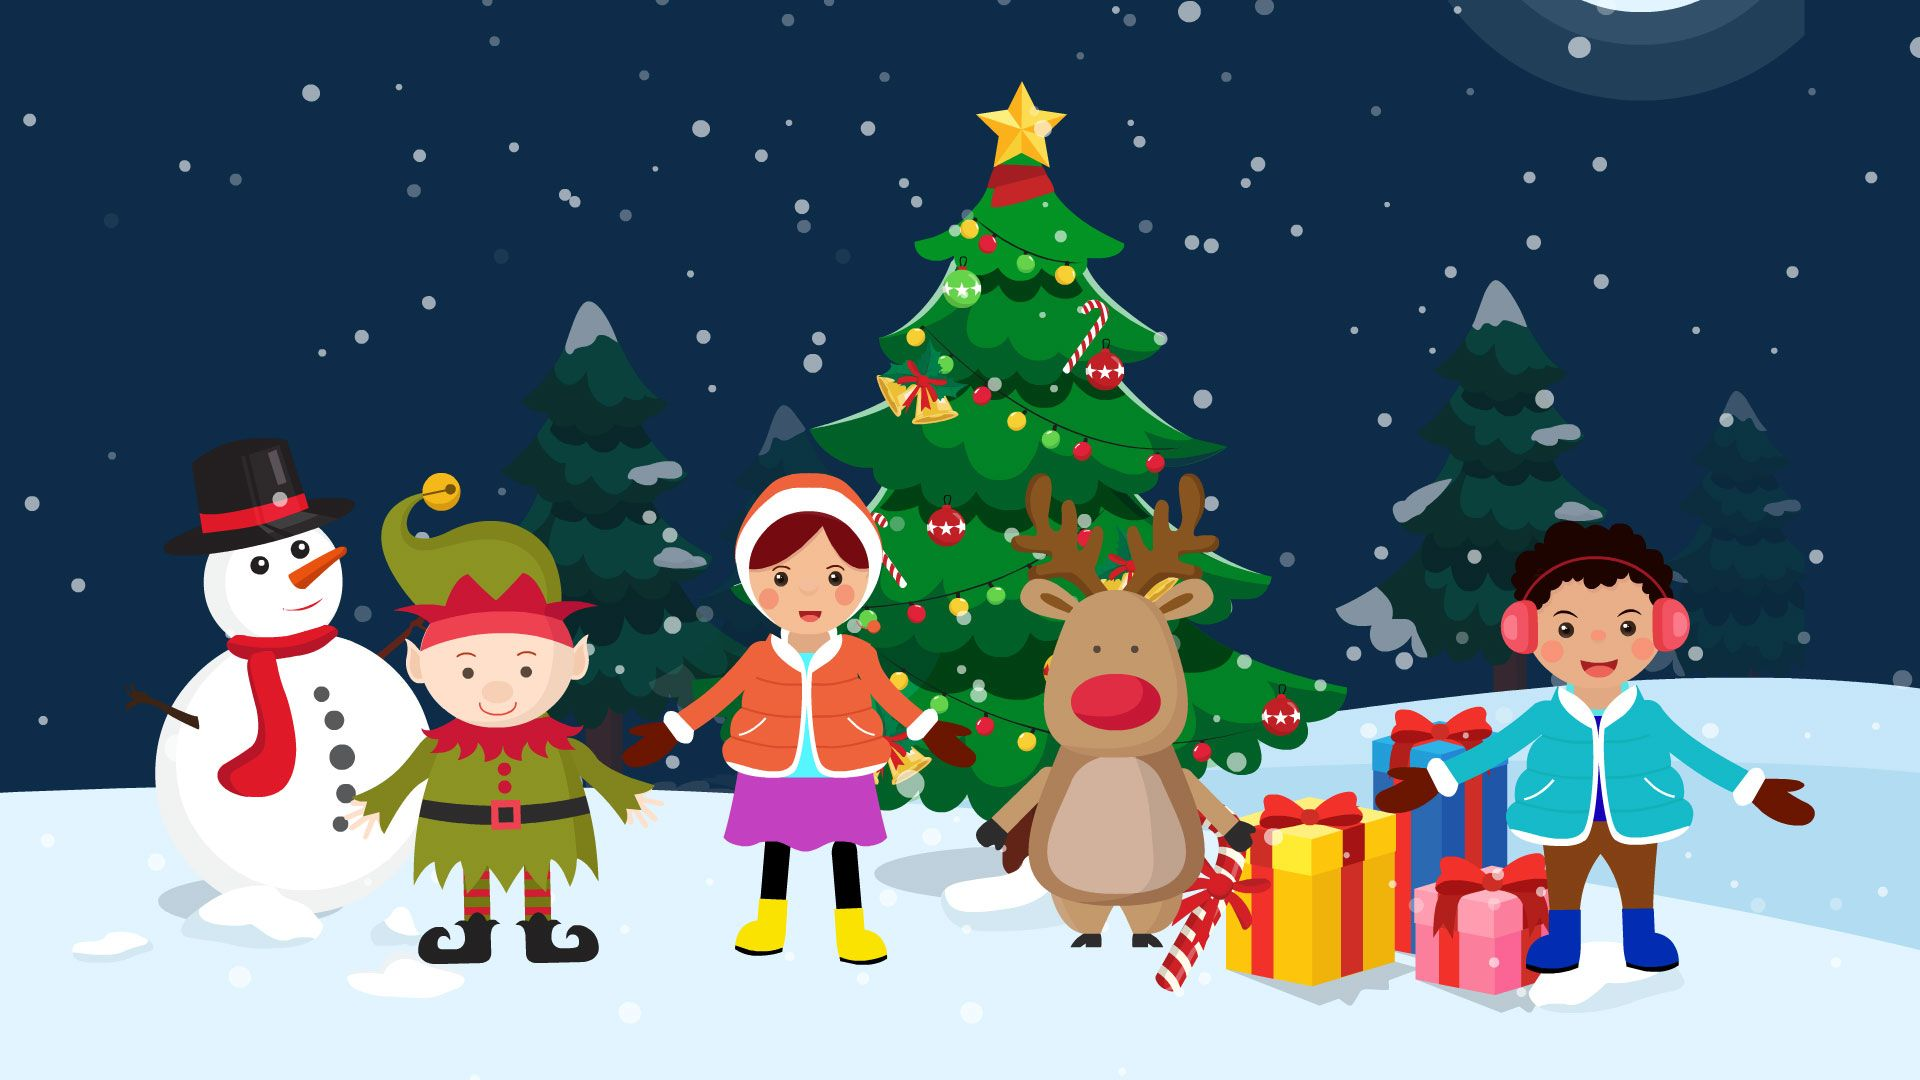 New year and christmas cartoon and song for children | Kids songs, Christmas  cartoons, New year cartoon